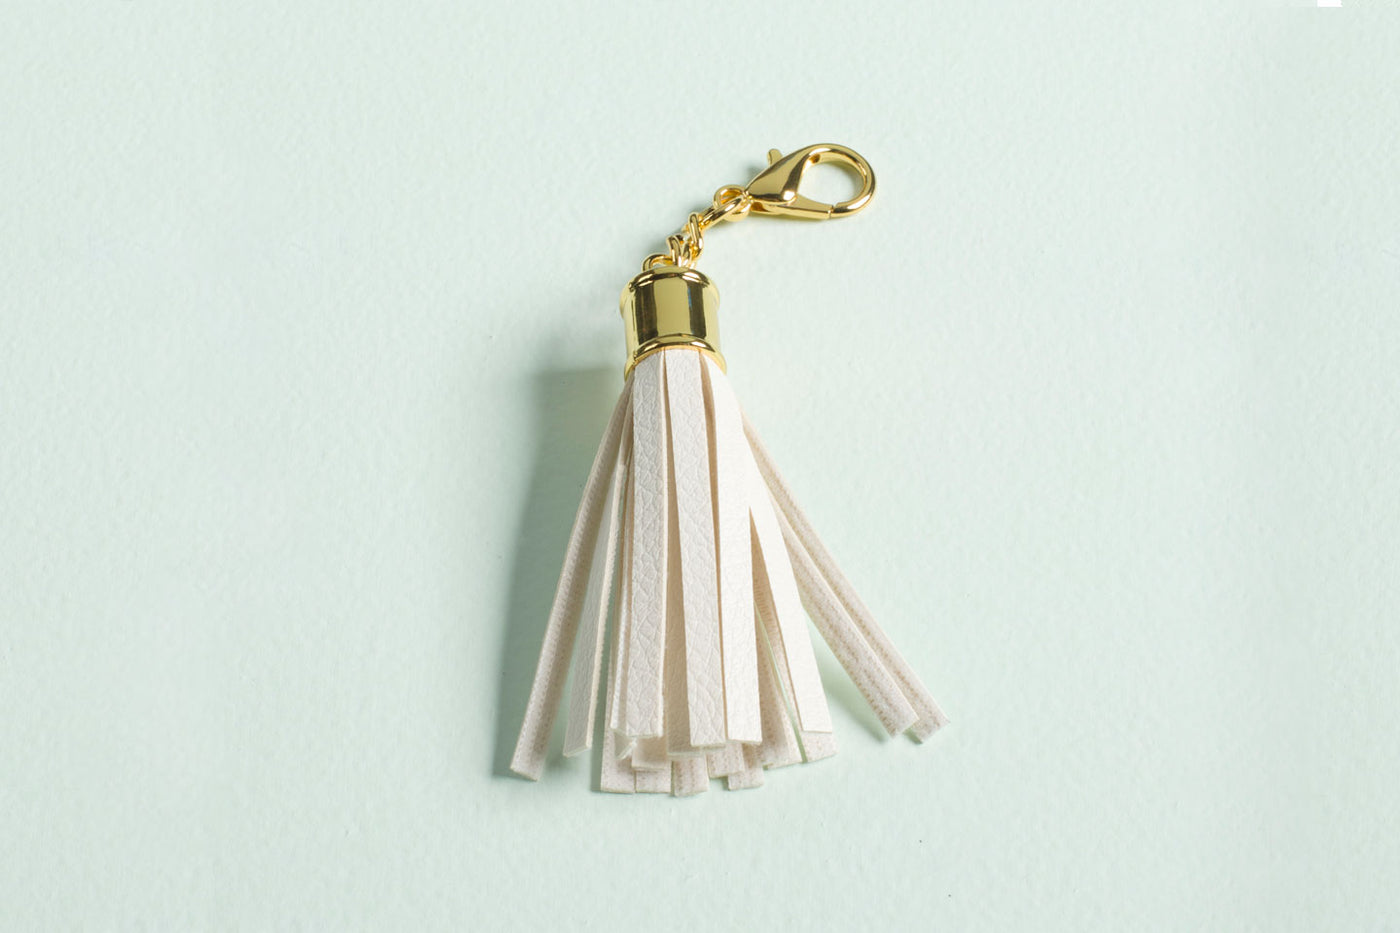 Tassel Keychain in Winter White Faux Leather